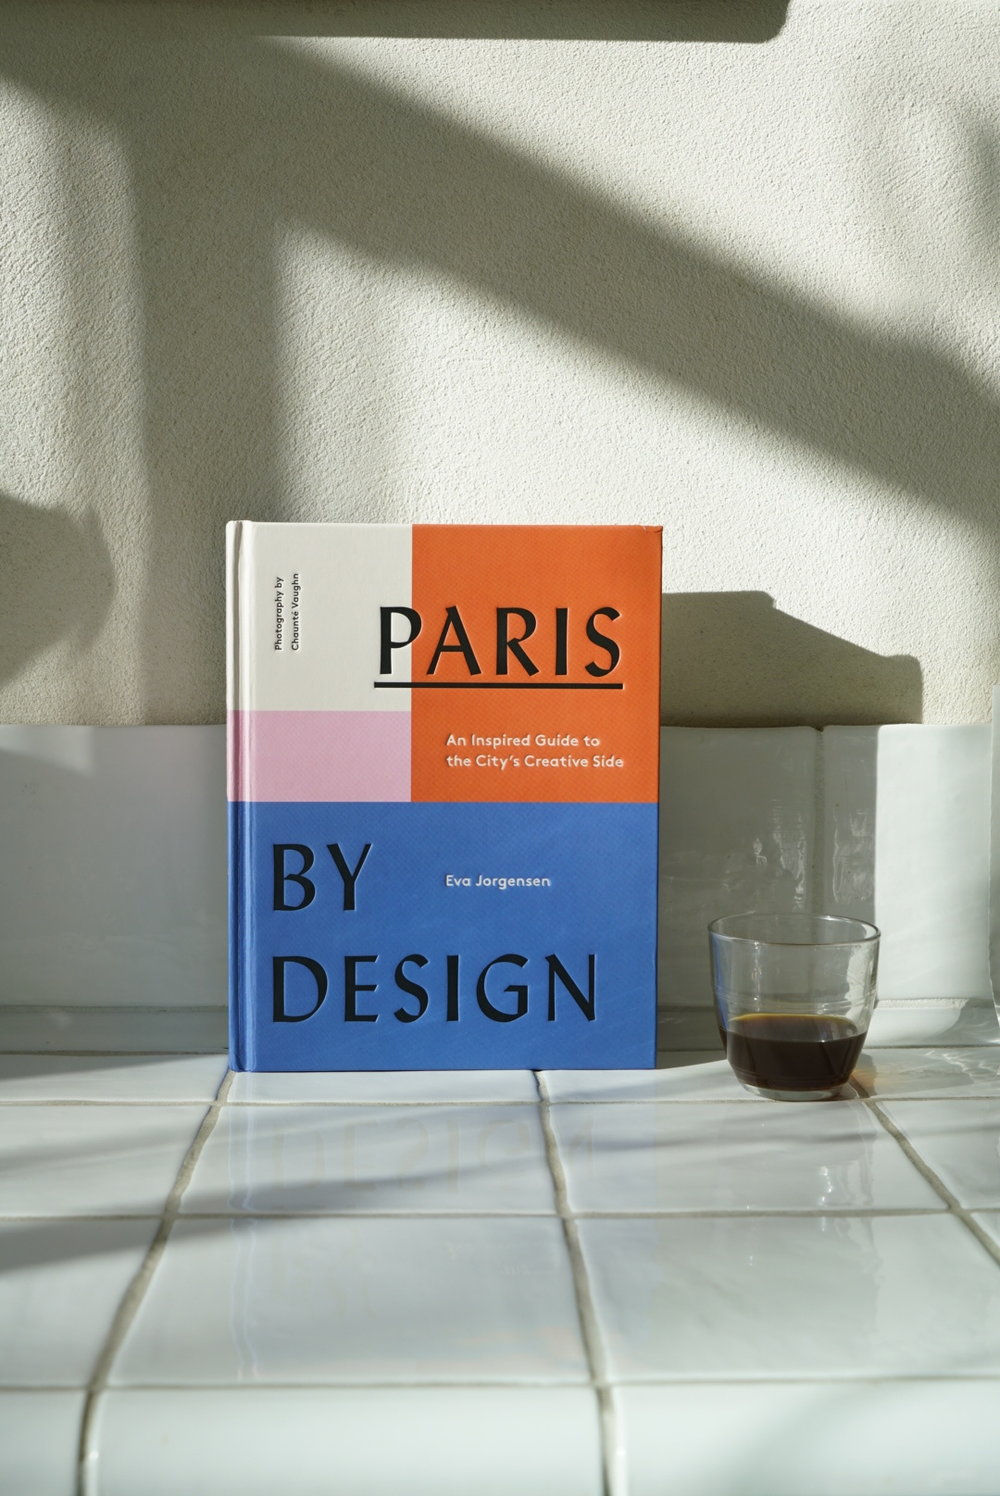 Paris by Design. Image by Chaunte Vaughn